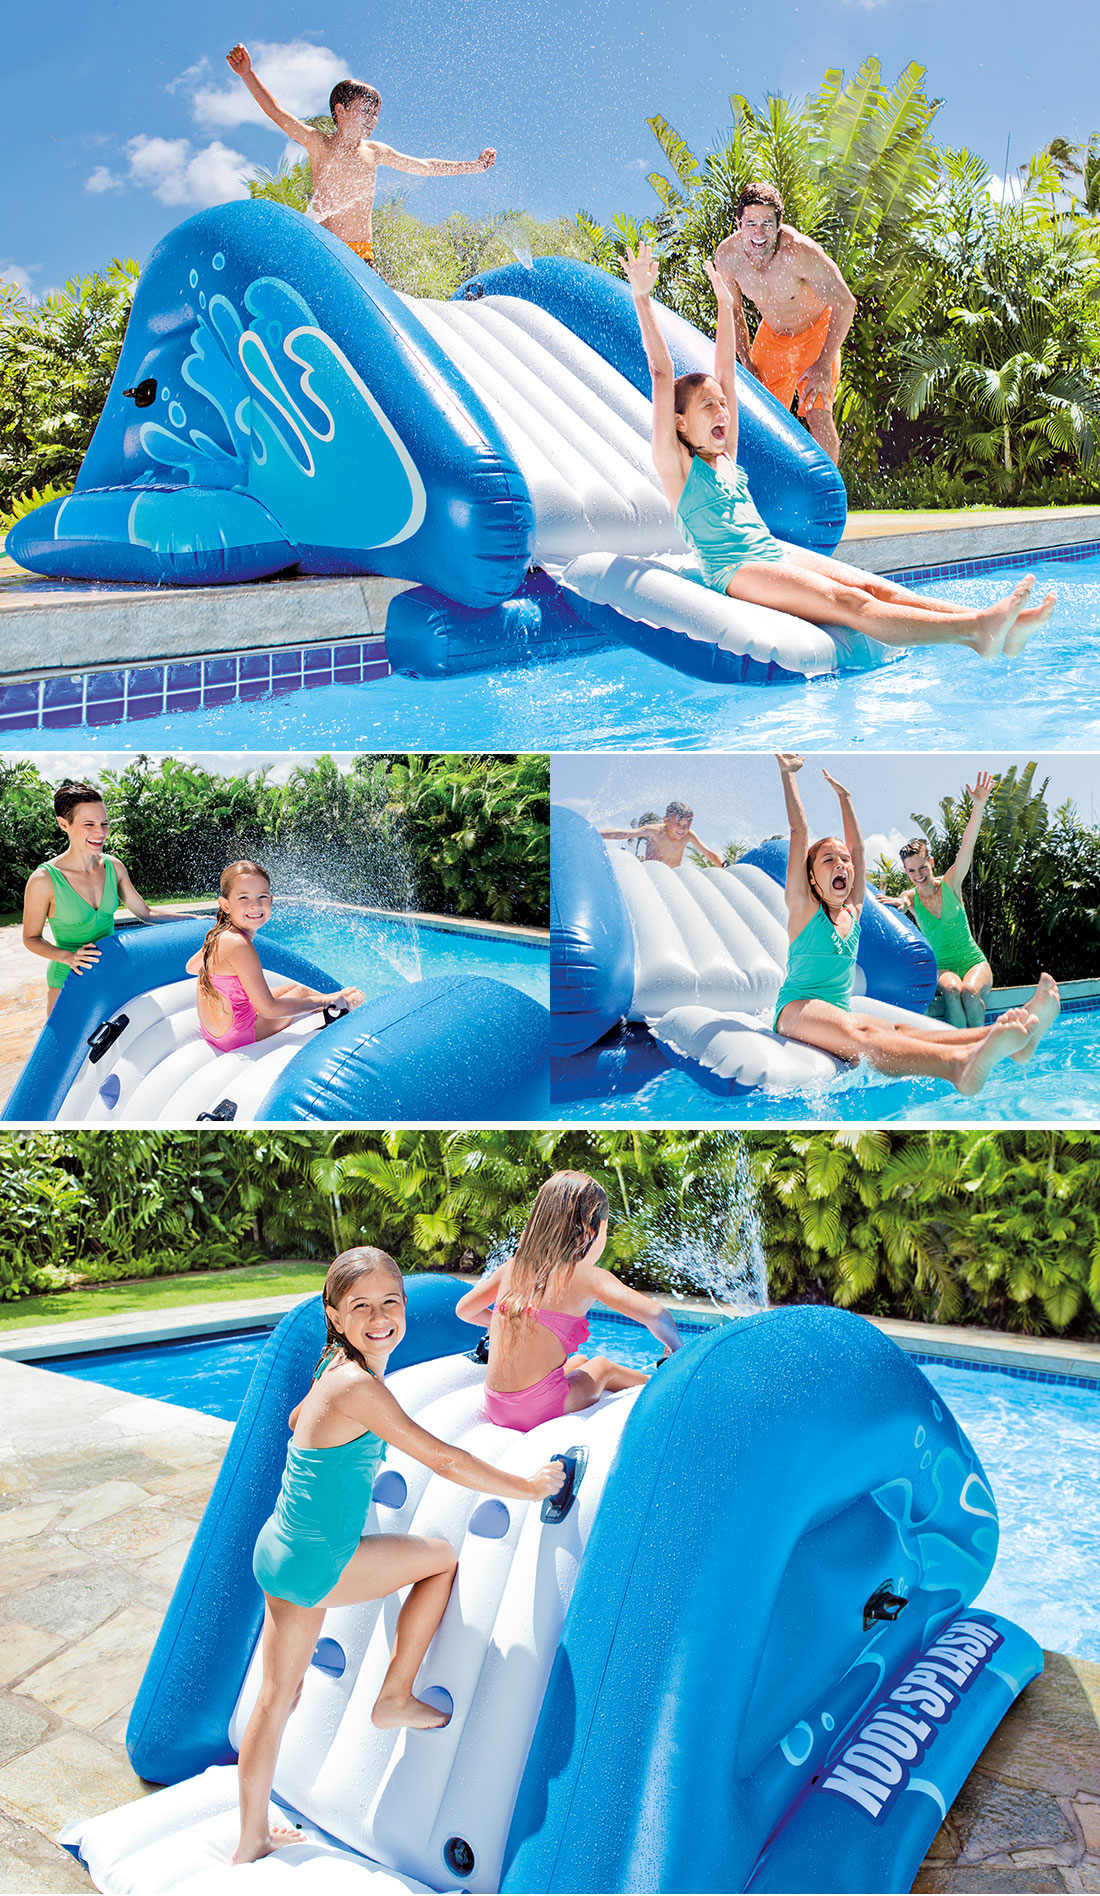 Toboggan gonflable pour piscine enterr e for Piscine plastique